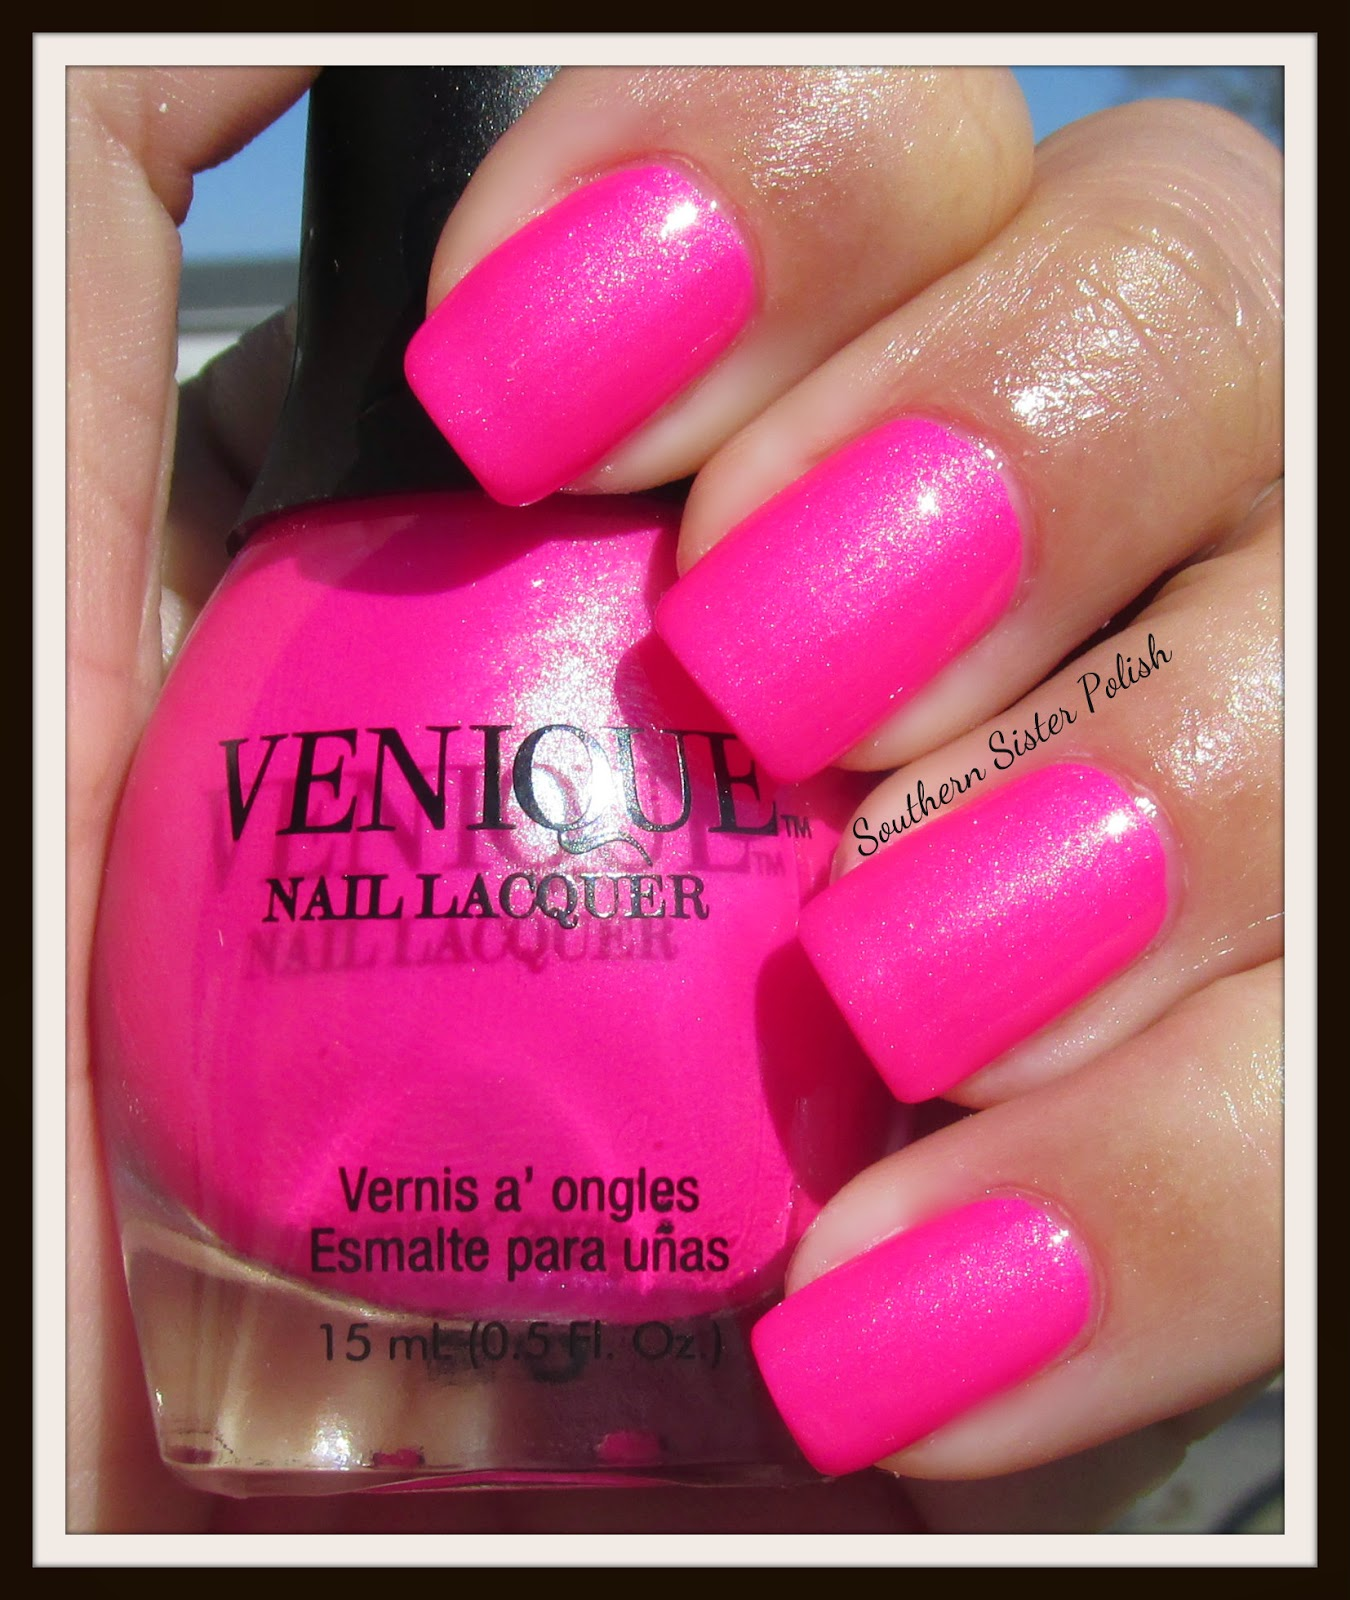 Venique Nail Lacquer Swatch And Review